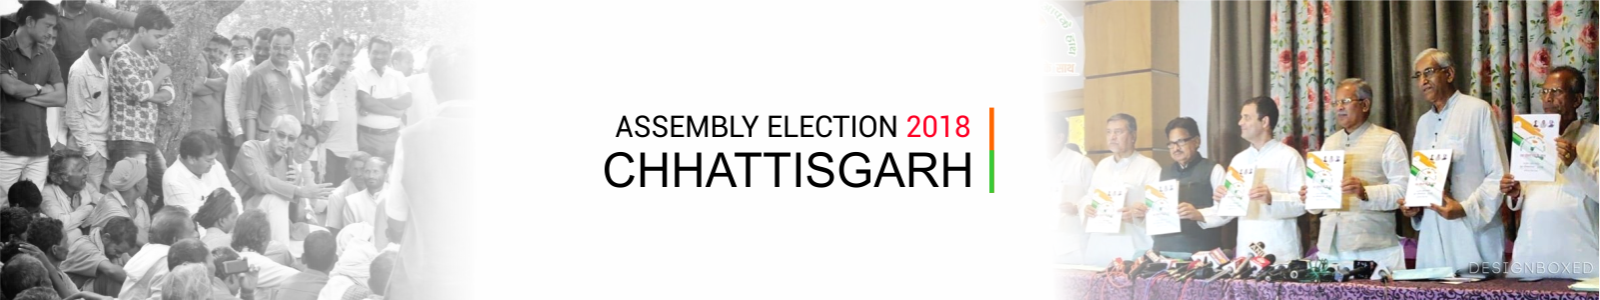 Assembly Election 2018 Chhattisgarh | Election Campaign Management Company India | Design Boxed Creatives